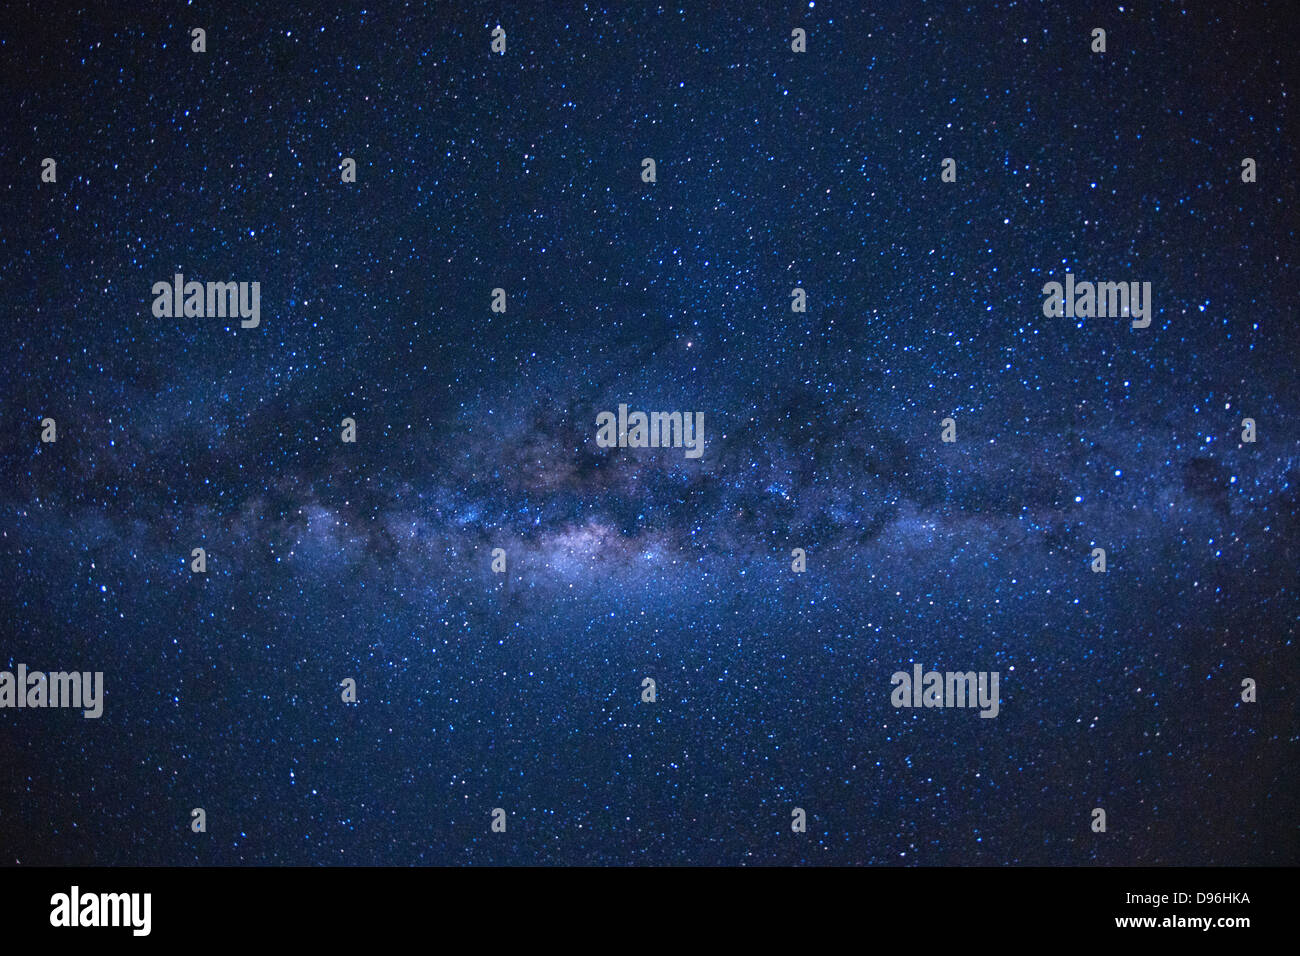 The Milky Way as seen from the French island of Reunion in the Indian Ocean. - Stock Image